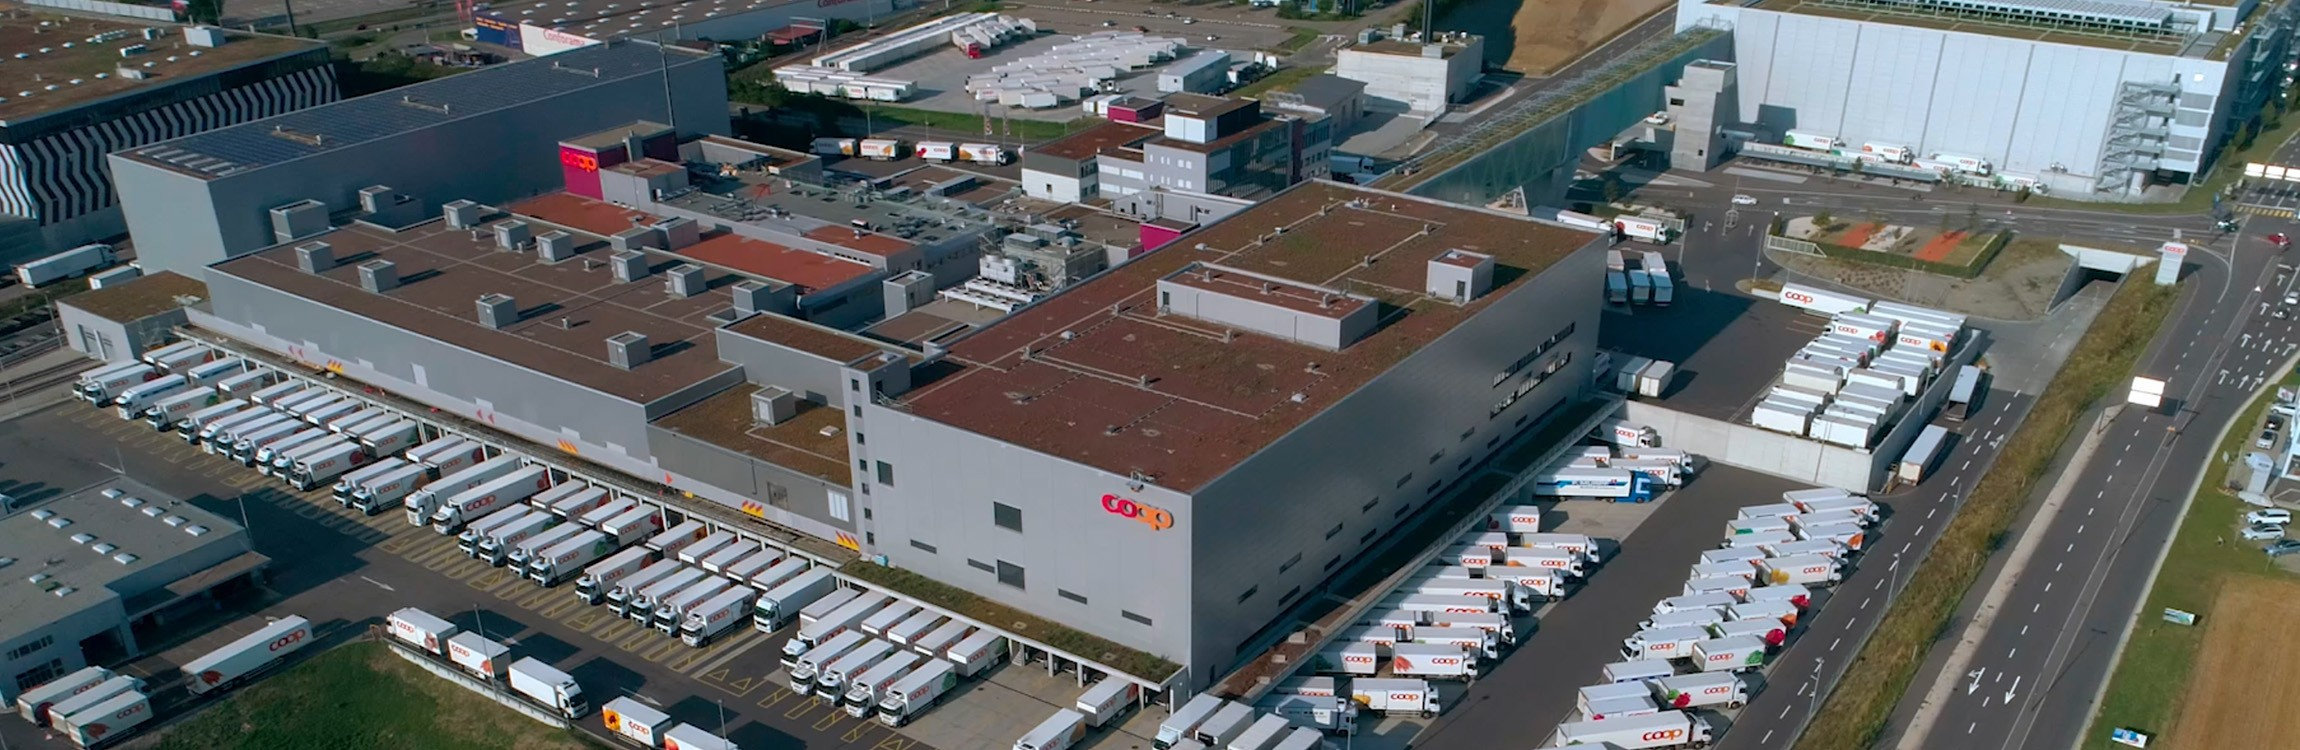 The facility is a fully automated freezer distribution center, 'the refrigerator' for refrigerated goods and the empty container control center.